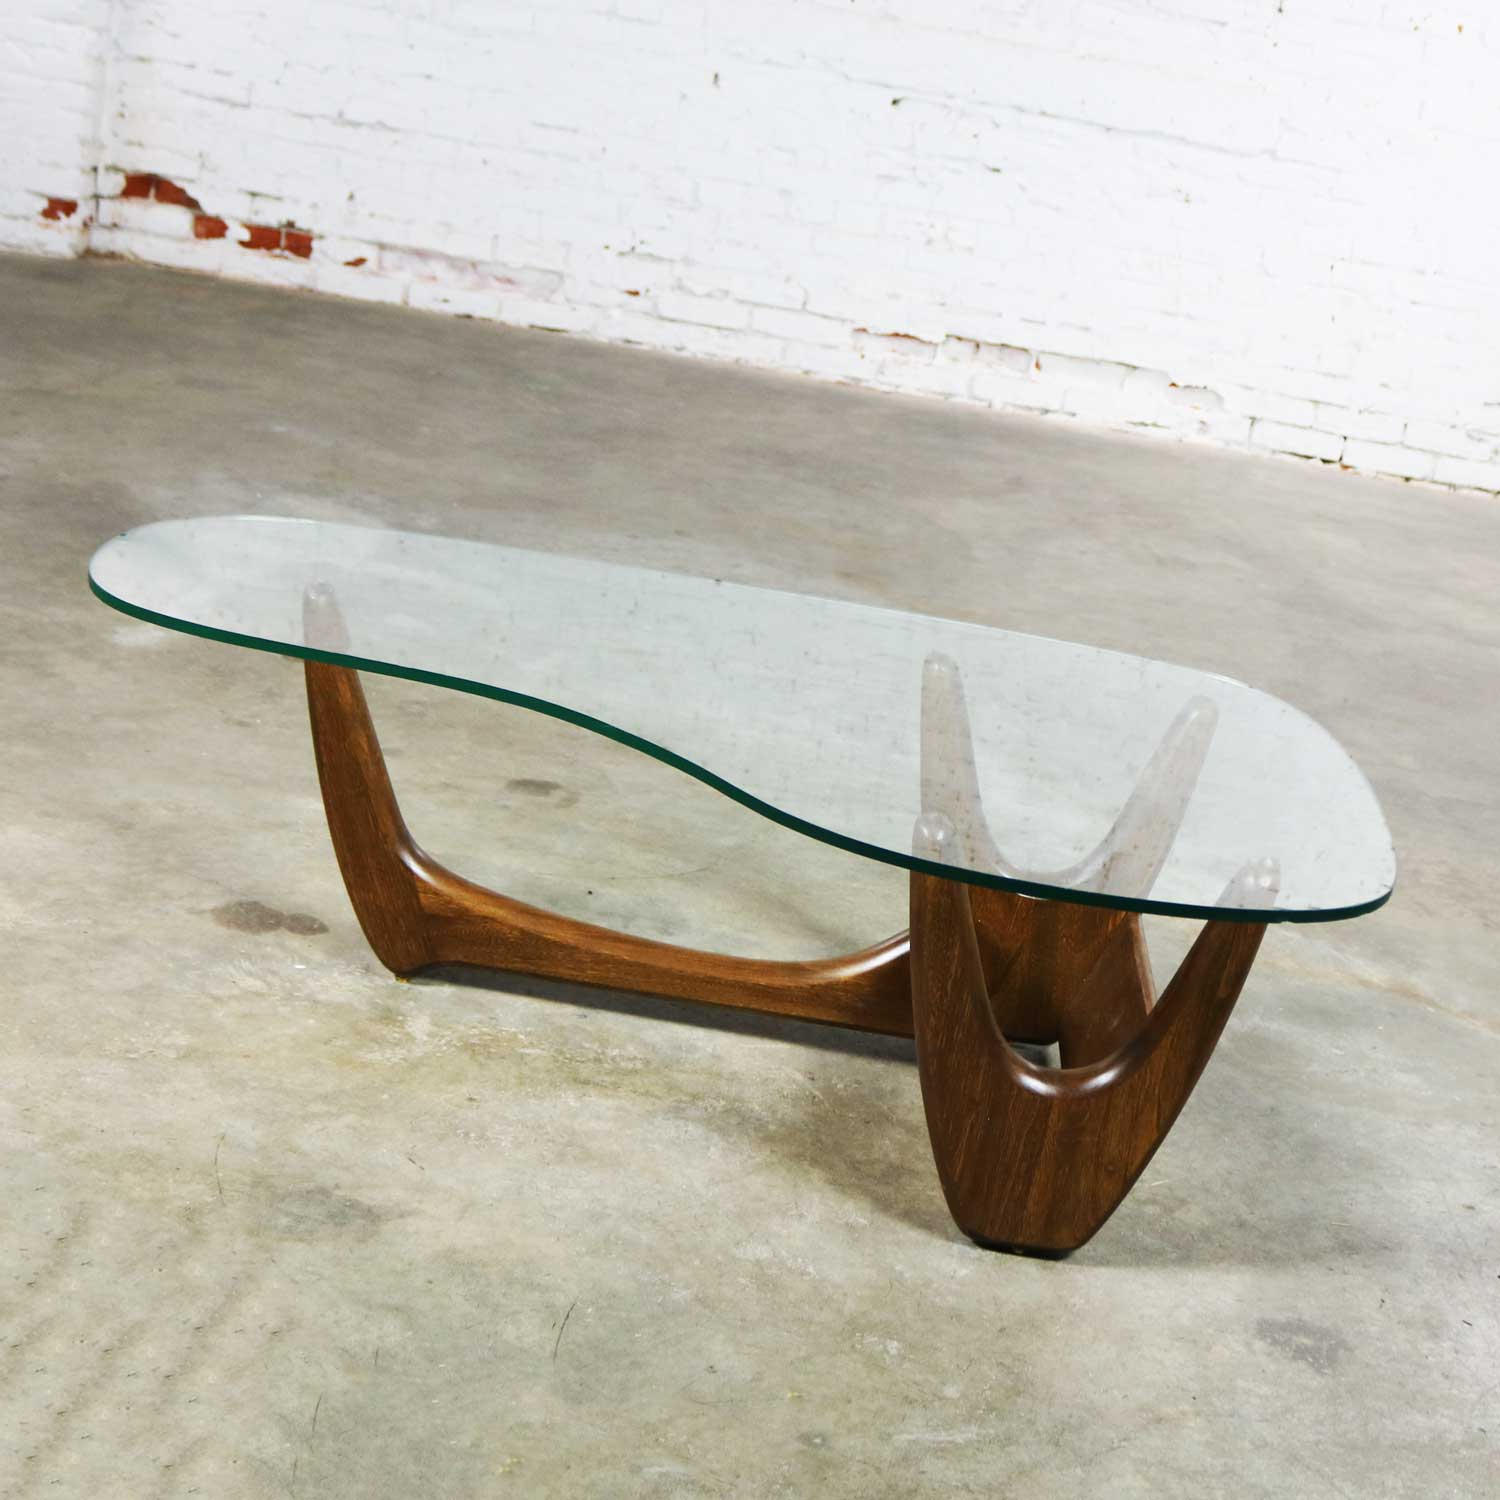 Mid Century Modern Biomorphic Coffee Table Attributed To Kroehler Or